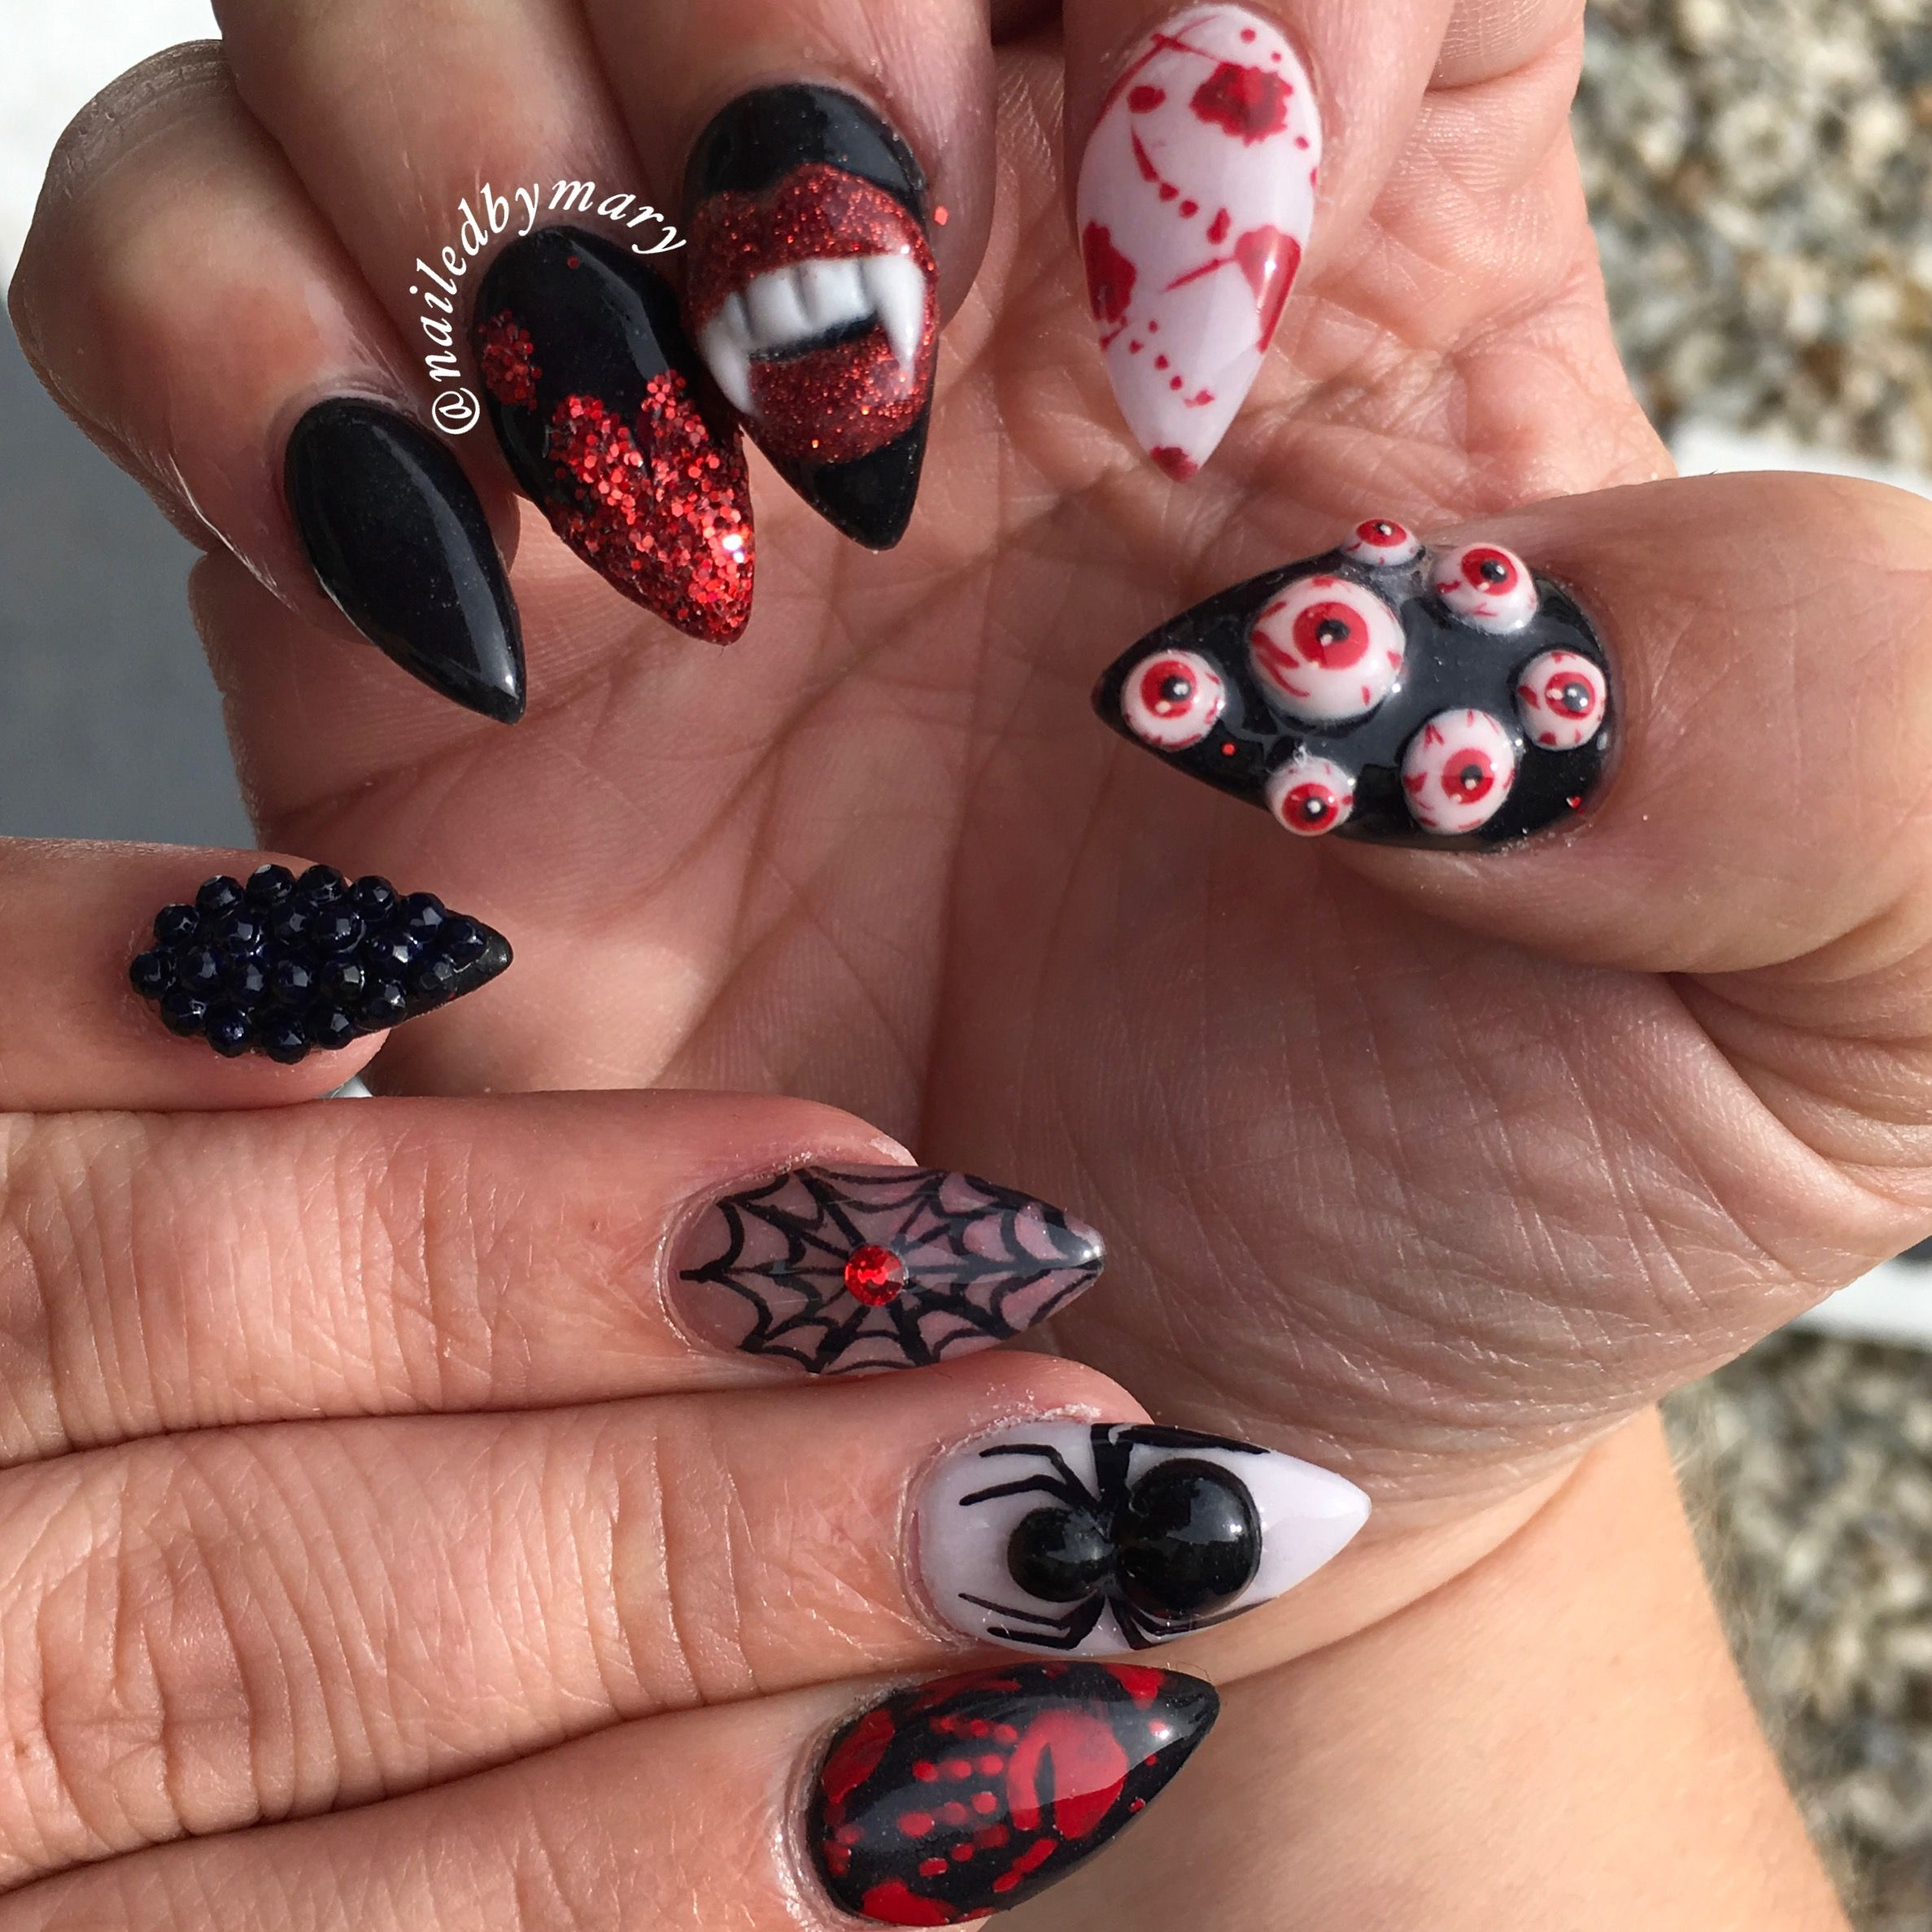 3d nail art eyeballs fangs spider halloween web stiletto scary 3d nail art eyeballs fangs spider halloween web stiletto scary blood nails prinsesfo Choice Image